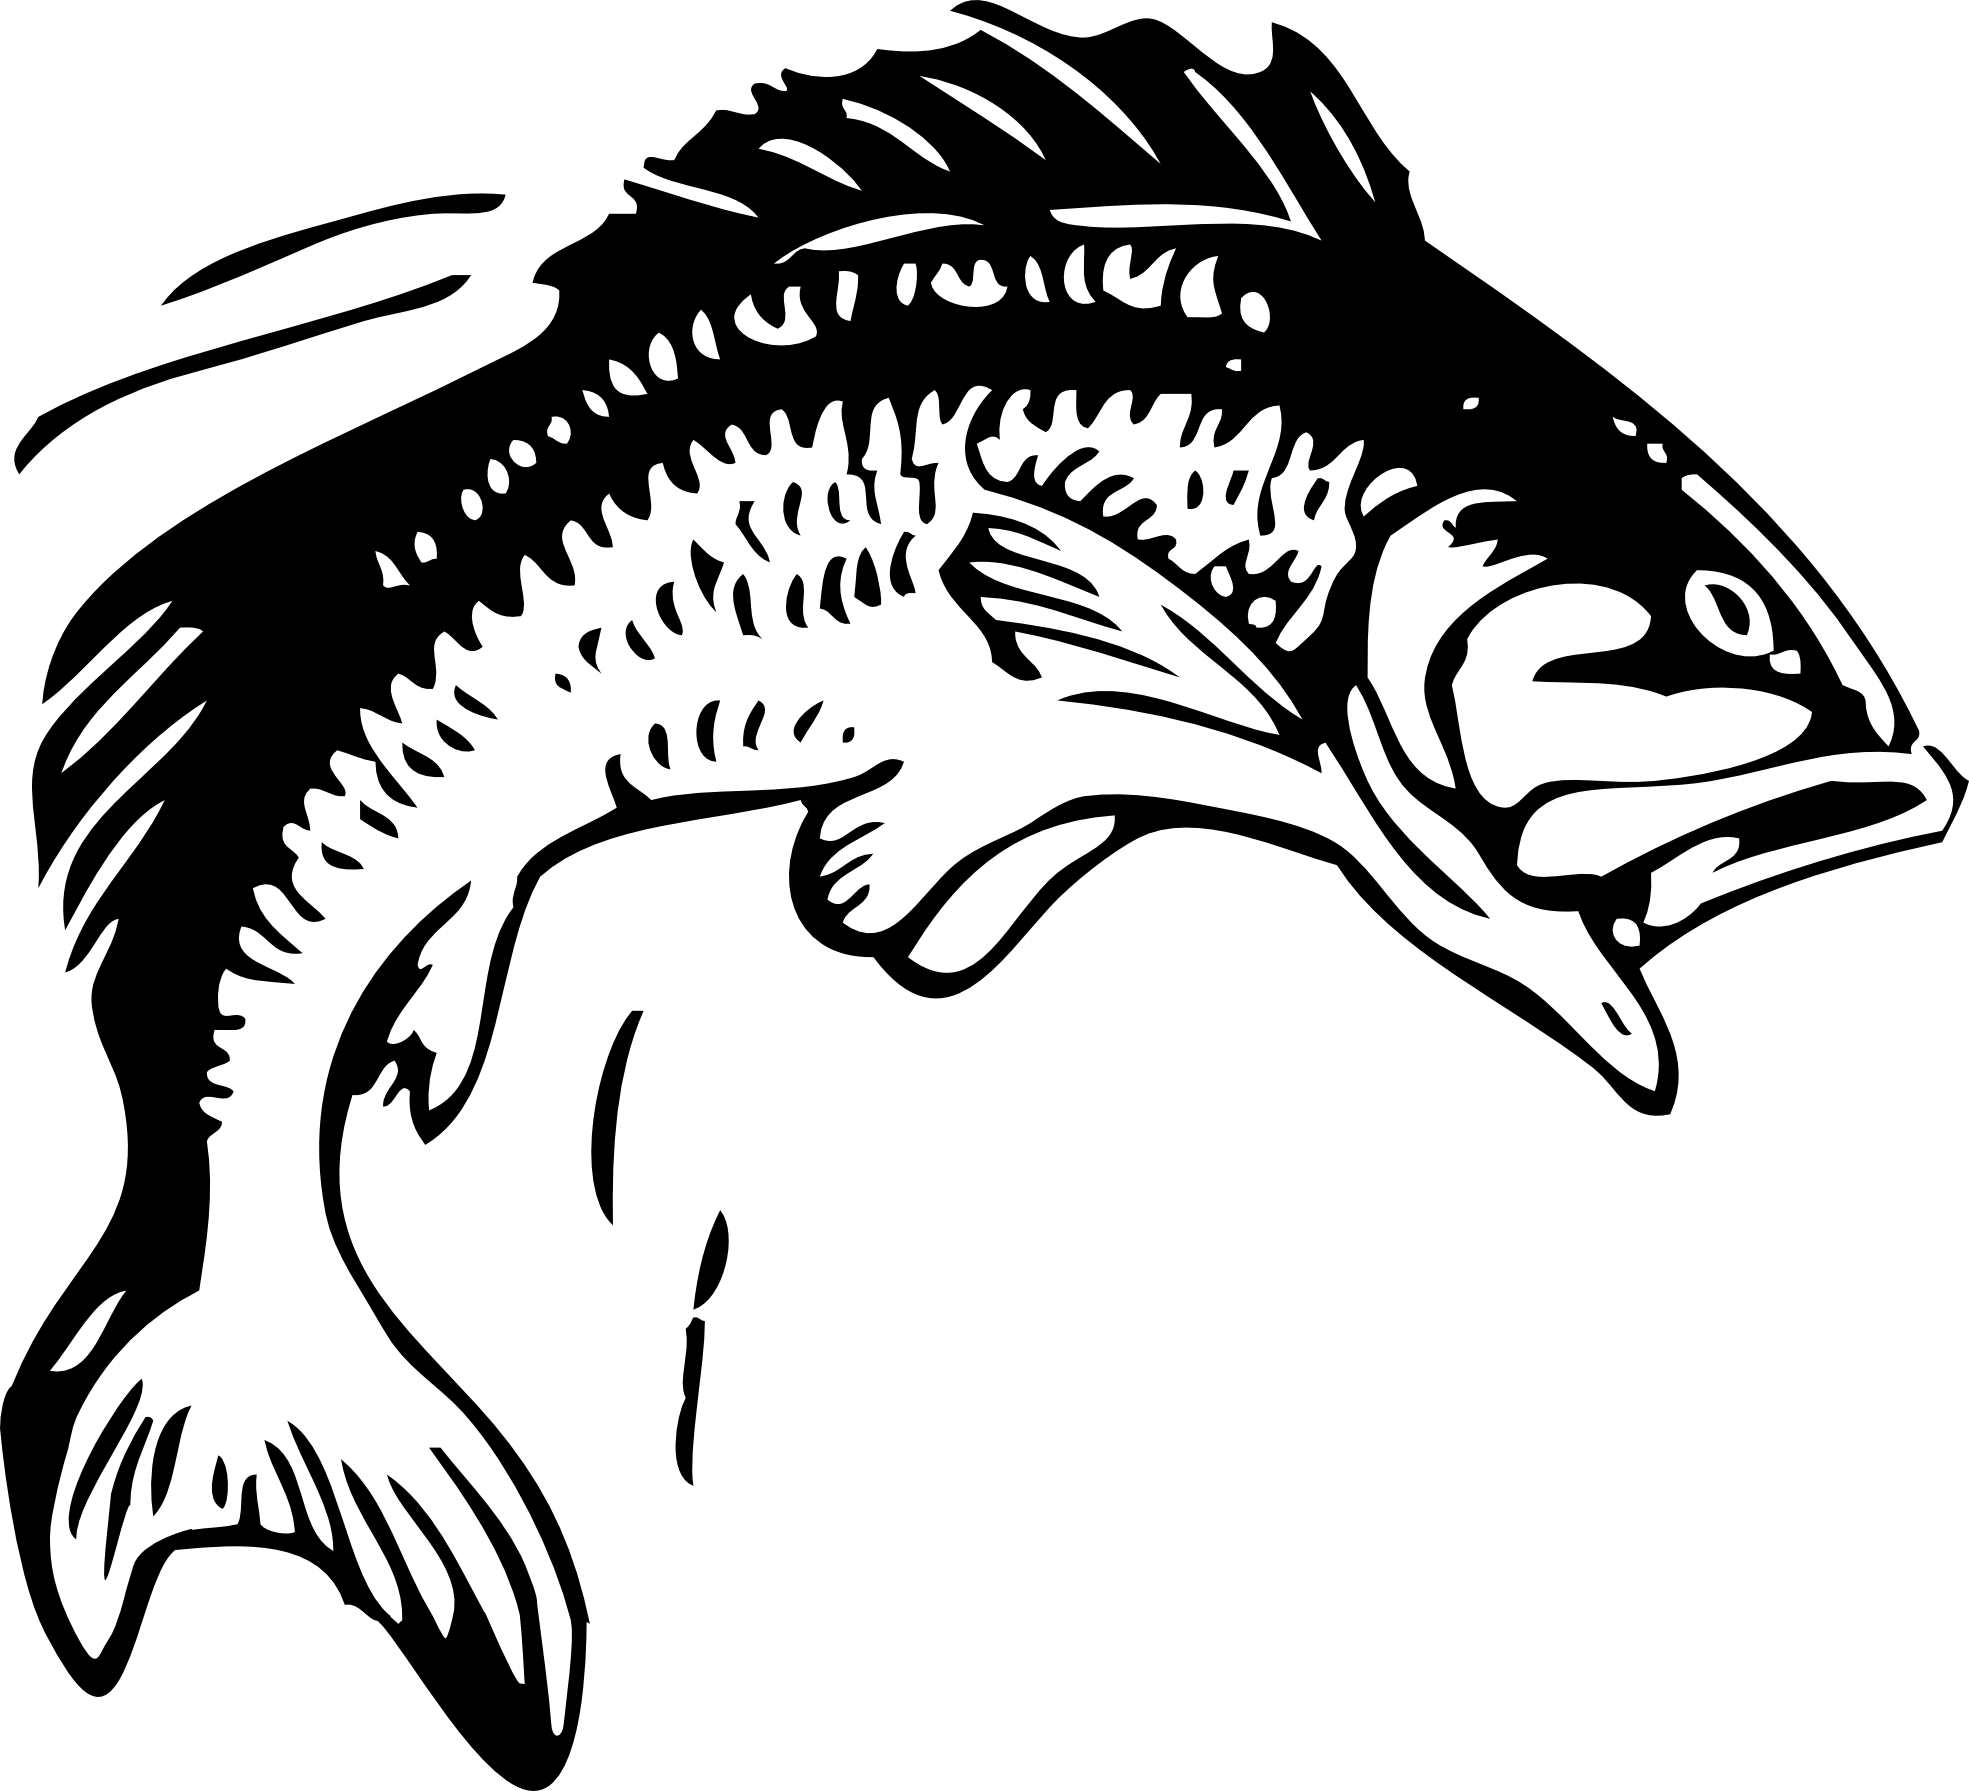 Fish black and white fishing clipart black and white logo.